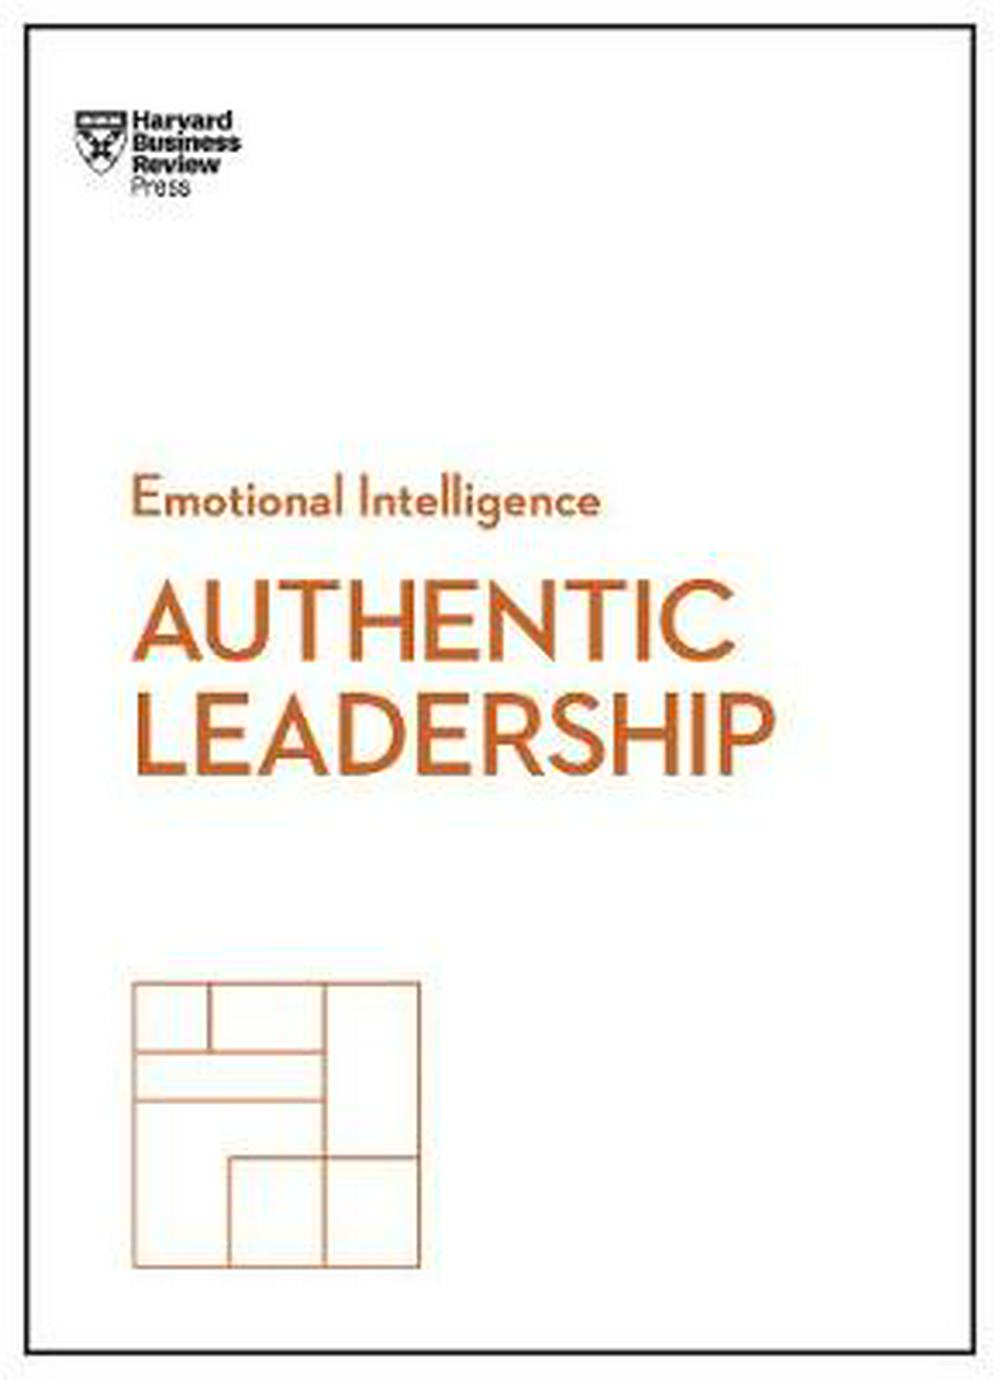 Authentic Leadership (HBR Emotional Intelligence Series) by Harvard Business Review, ISBN: 9781633693913